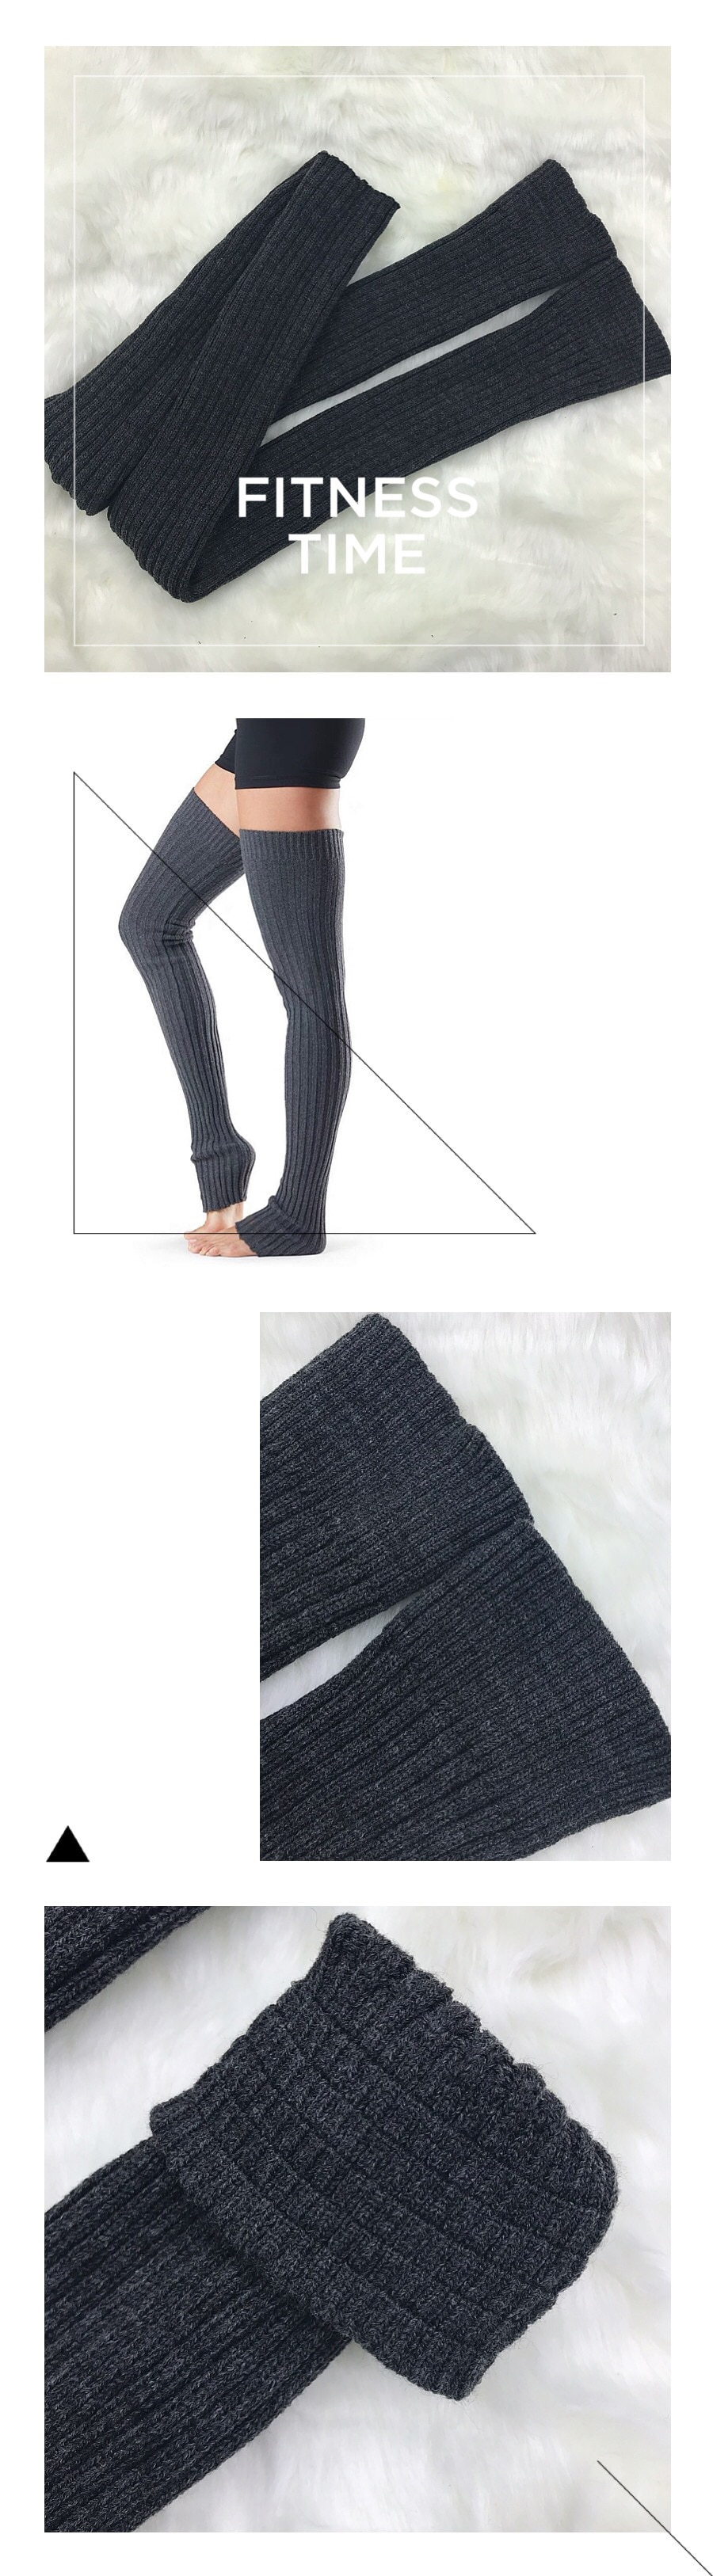 Women Thigh High Pirouette Leg Warmer For Woman Extra Long Boot Socks Over the Knee Cable Knit Yoga Dance Socks